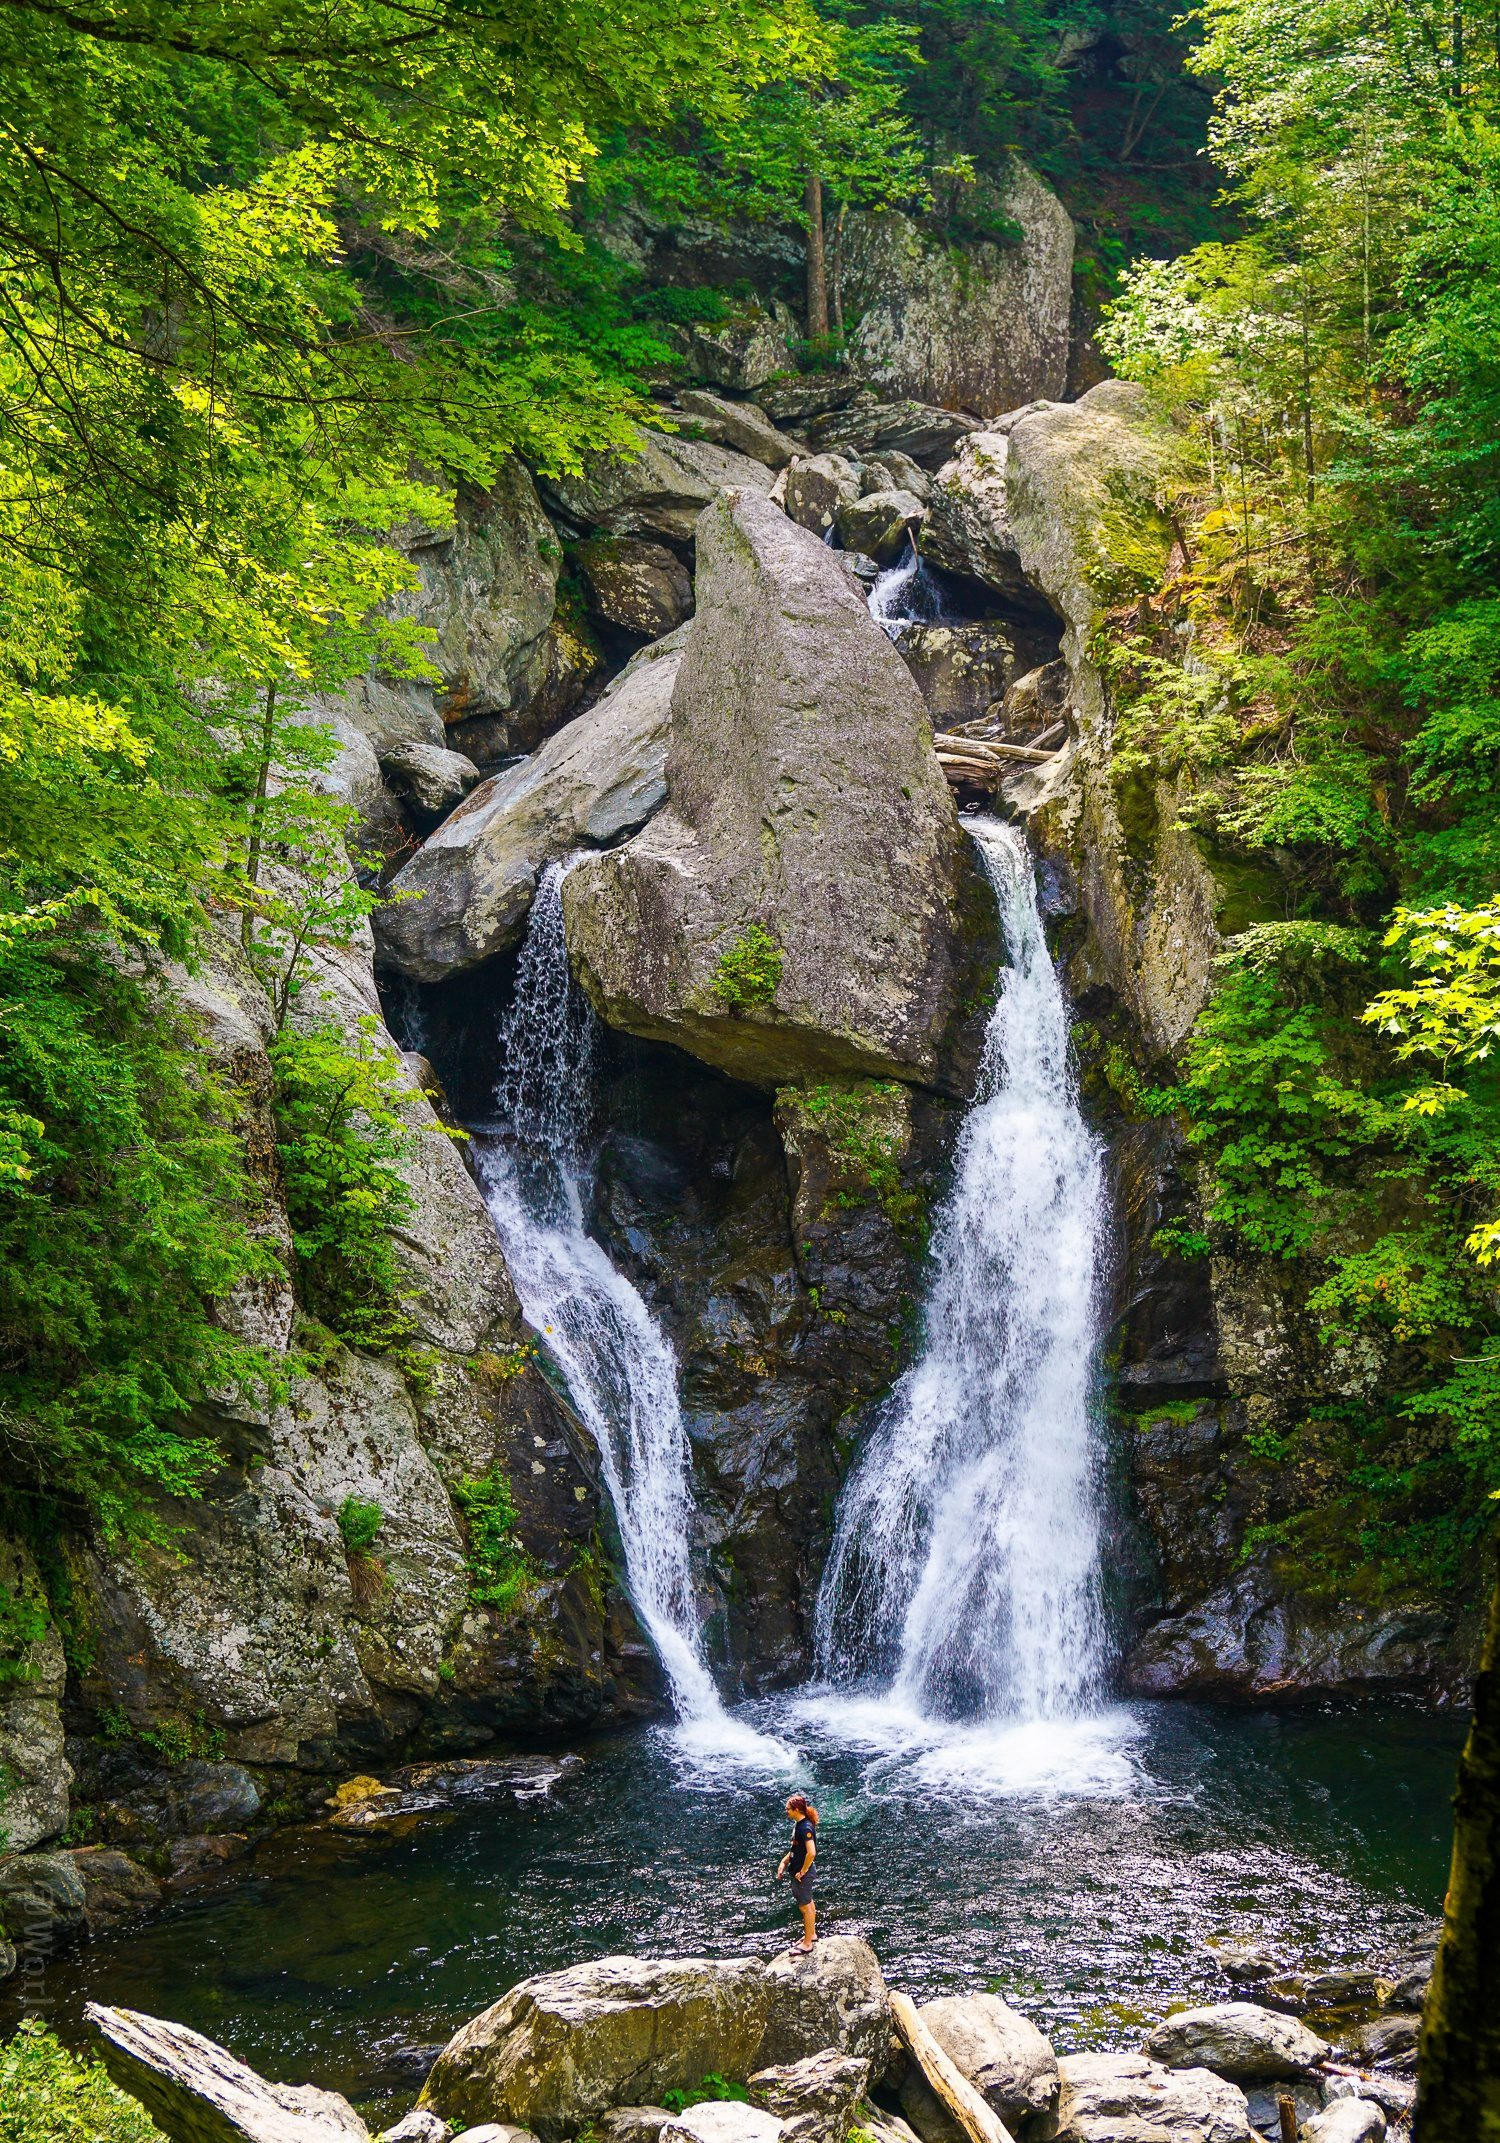 Bash Bish Falls is a great day hike in New England. Advice on hiking the Berkshires, MA side vs. Taconic State Park, NY. Highest waterfall in Massachusetts!